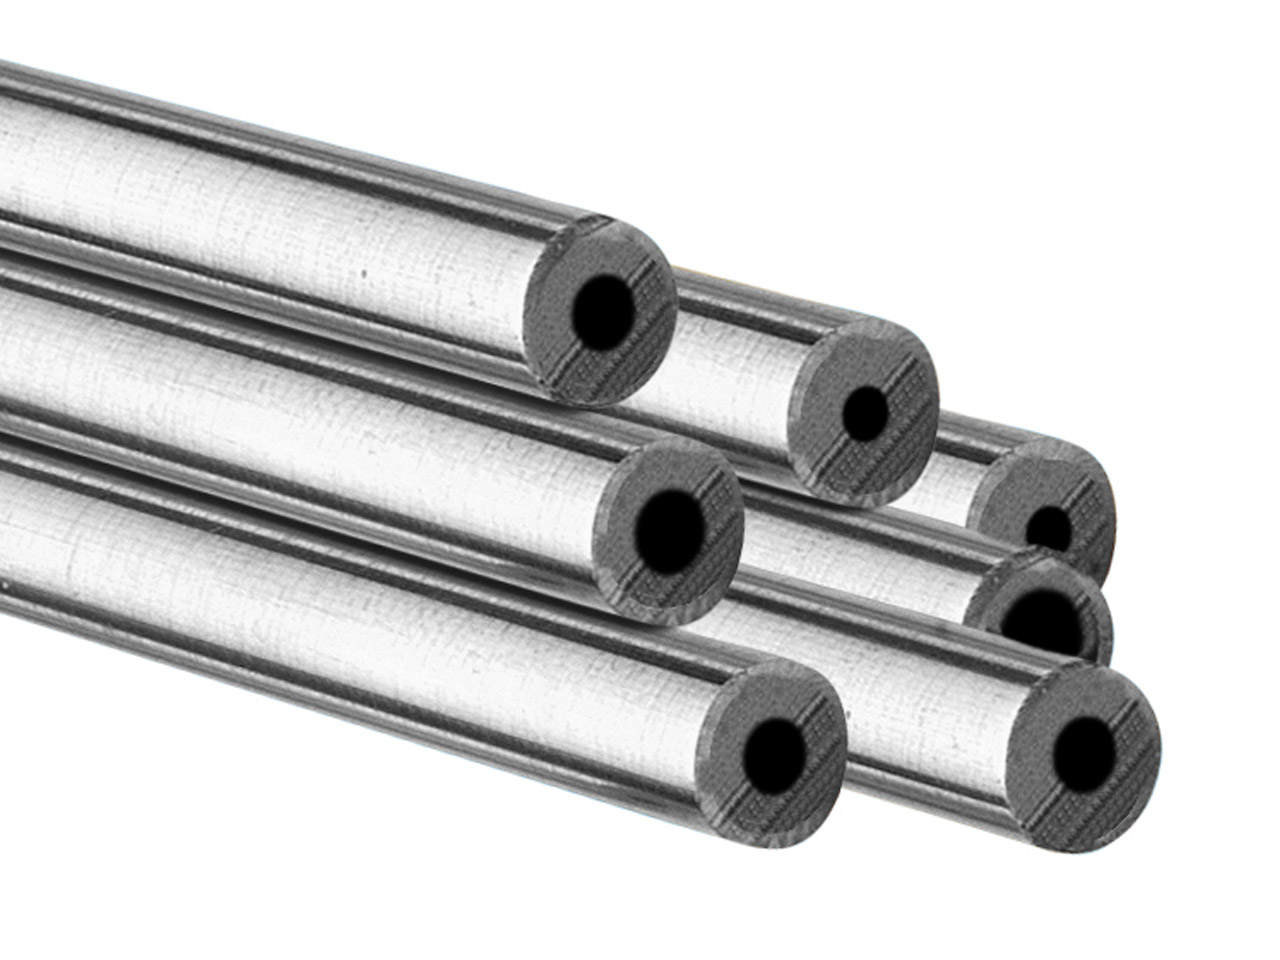 Sterling Silver Jt Tube,           Outside Diameter 3.15mm,           Inside Diameter 1.55mm, 0.8mm Wall Thickness